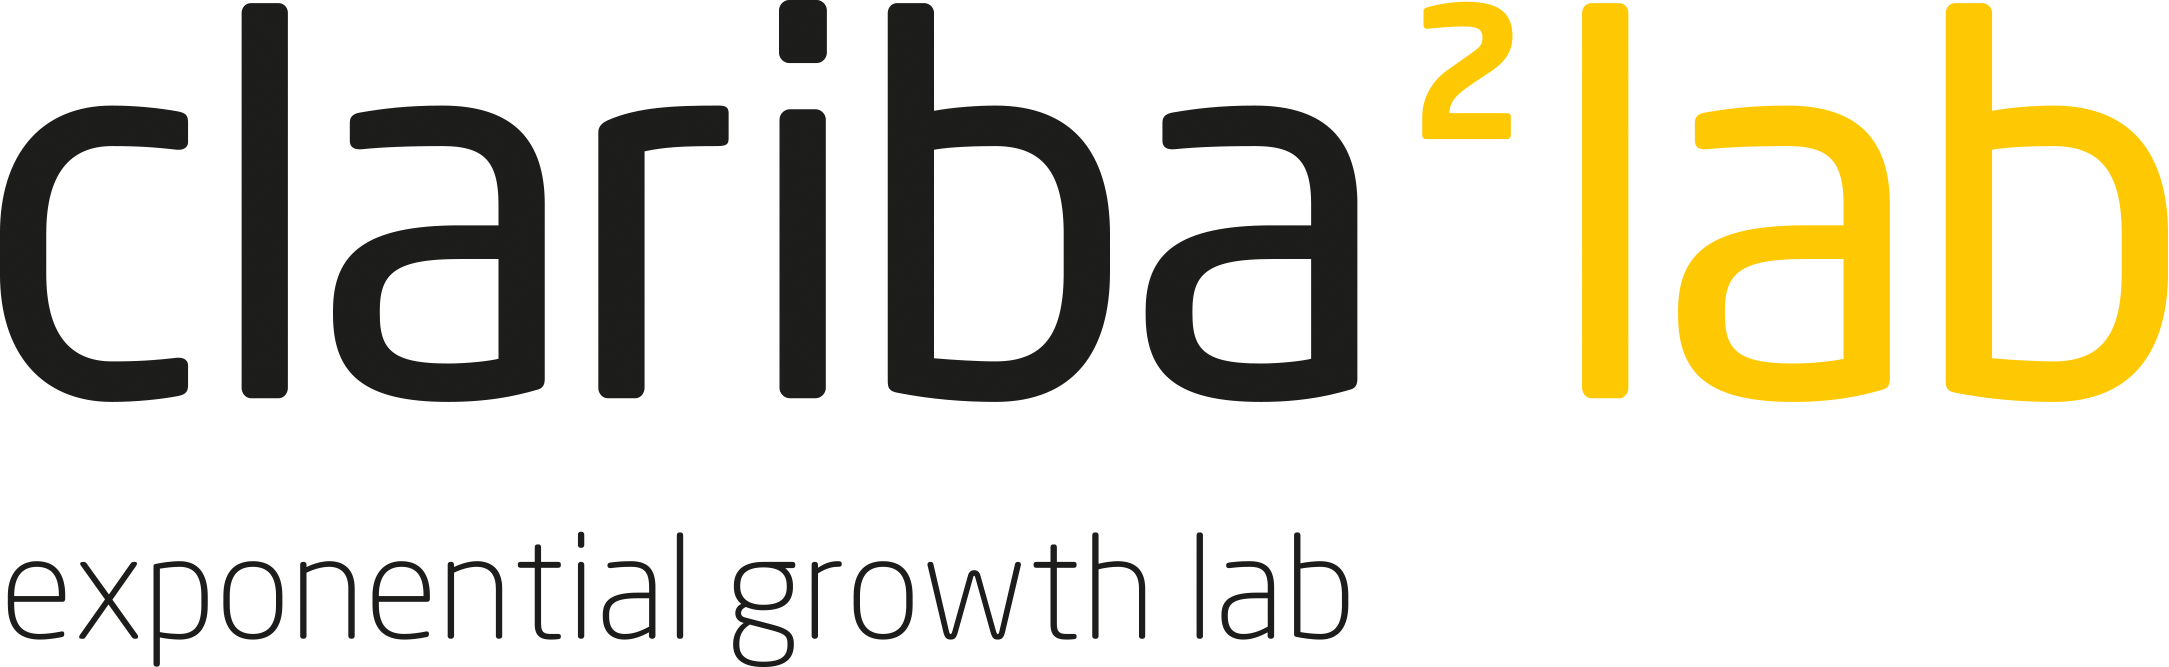 Clariba innovation lab logo